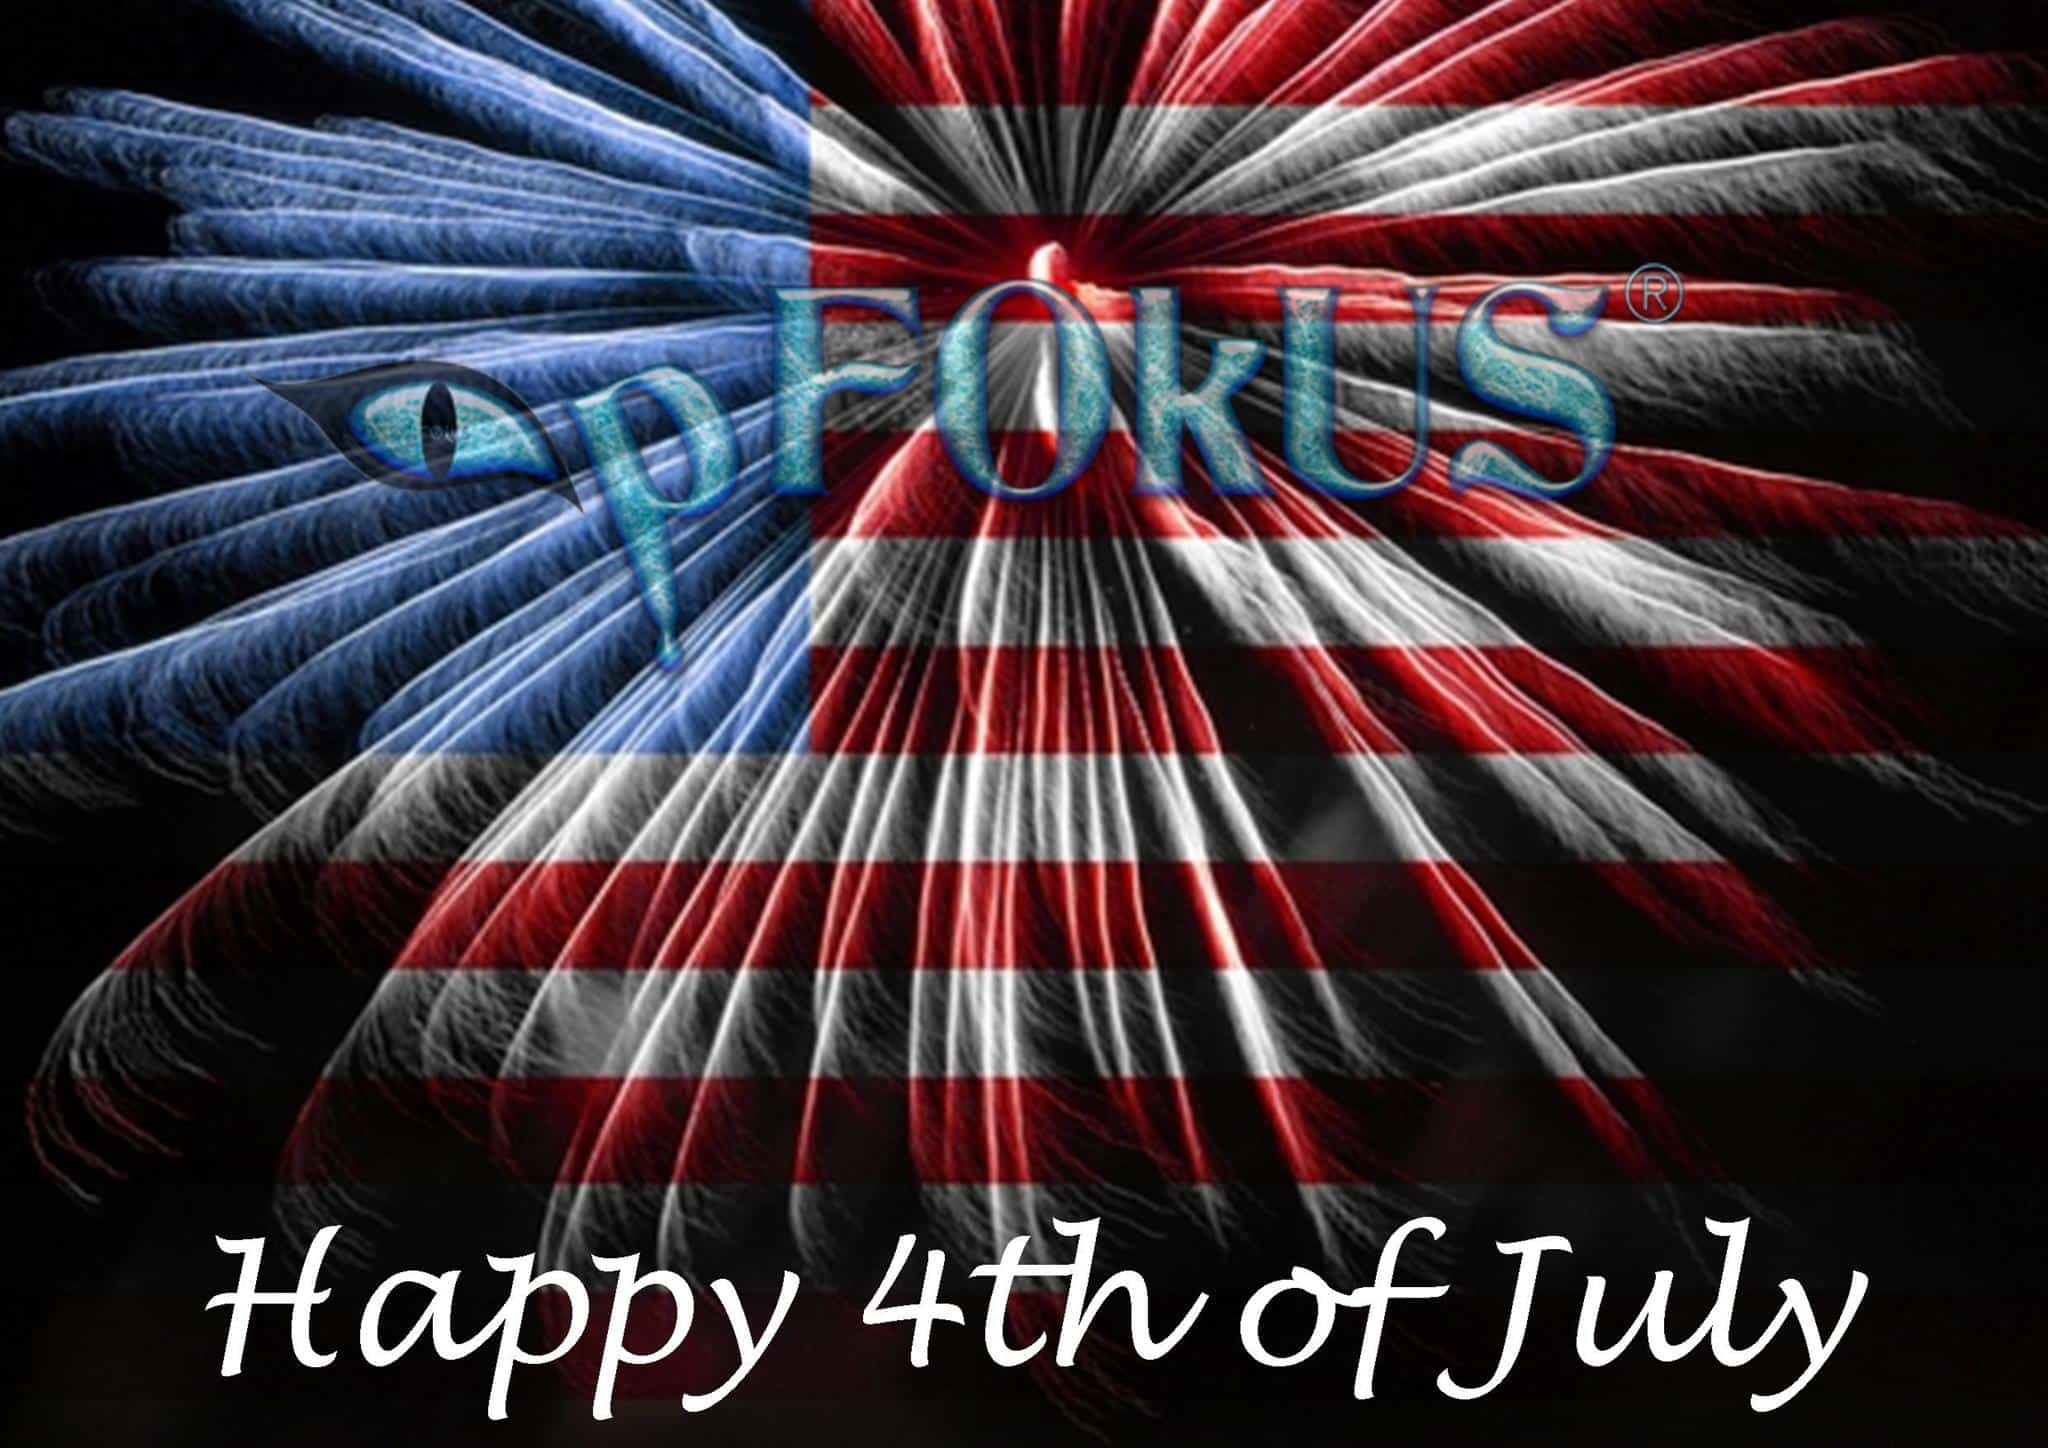 4th-of-July-pFOkUS